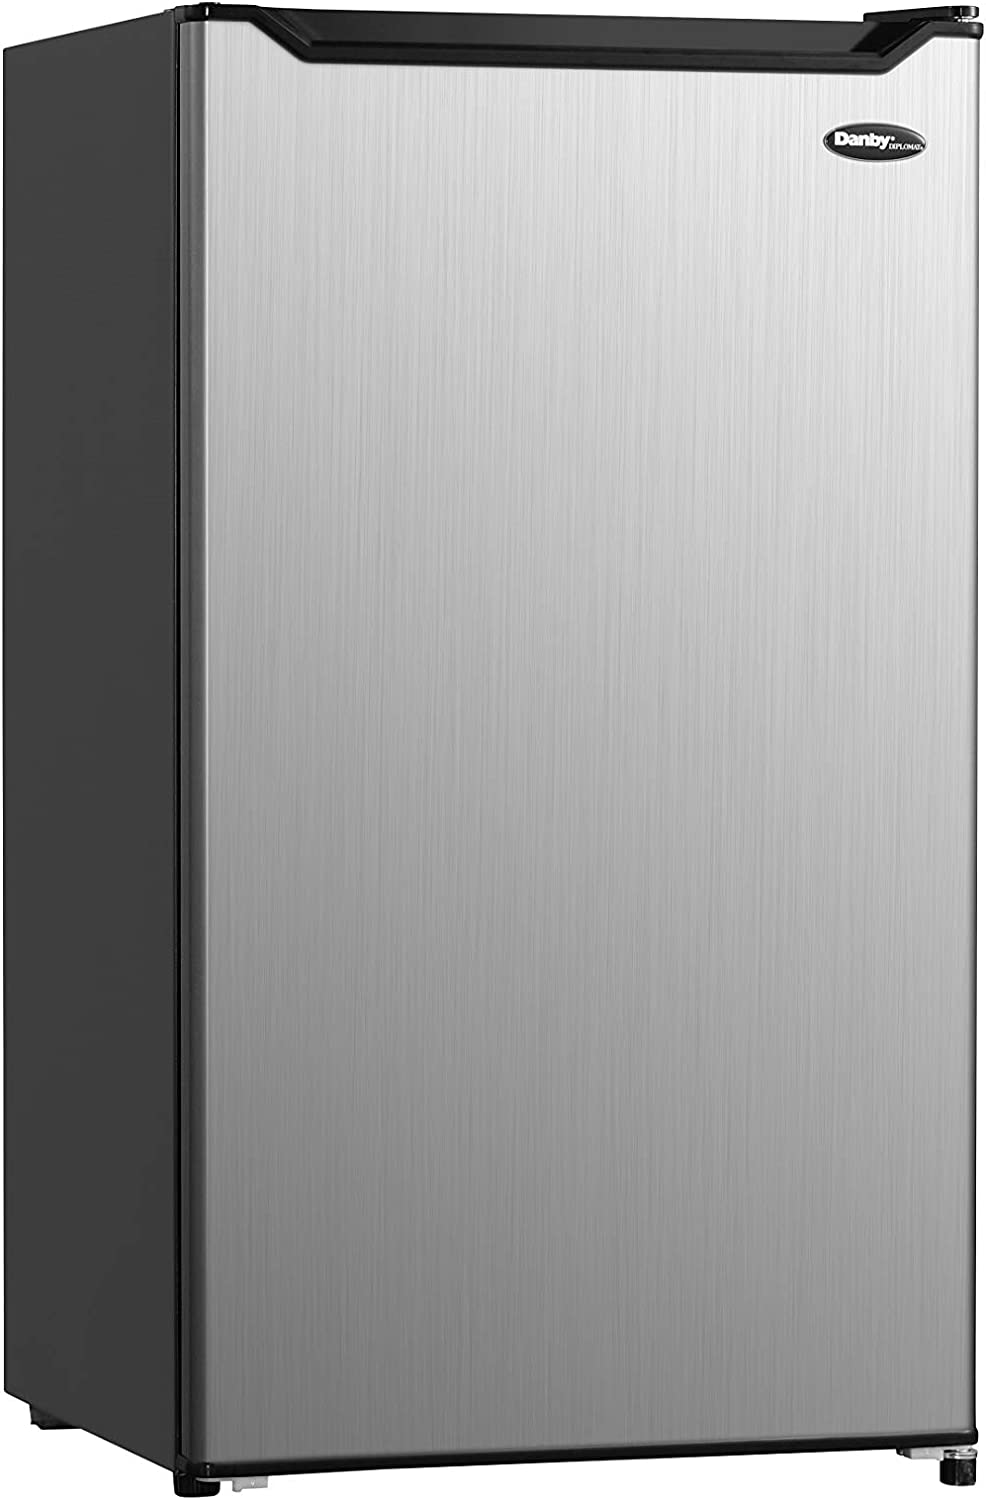 Danby DCR044B1SLM-6 Diplomat Compact mini fridge with freezer